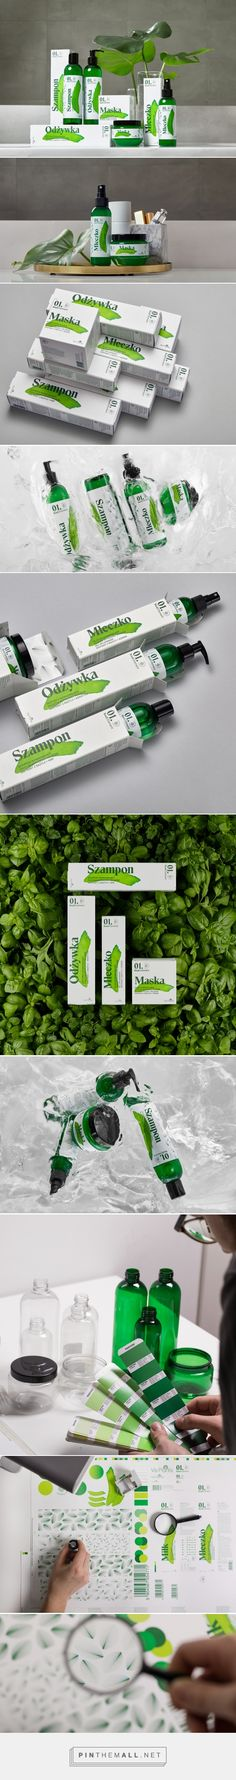 Element Cosmetics - Packaging of the World - Creative Package Design Gallery - http://www.packagingoftheworld.com/2017/06/element-cosmetics.html